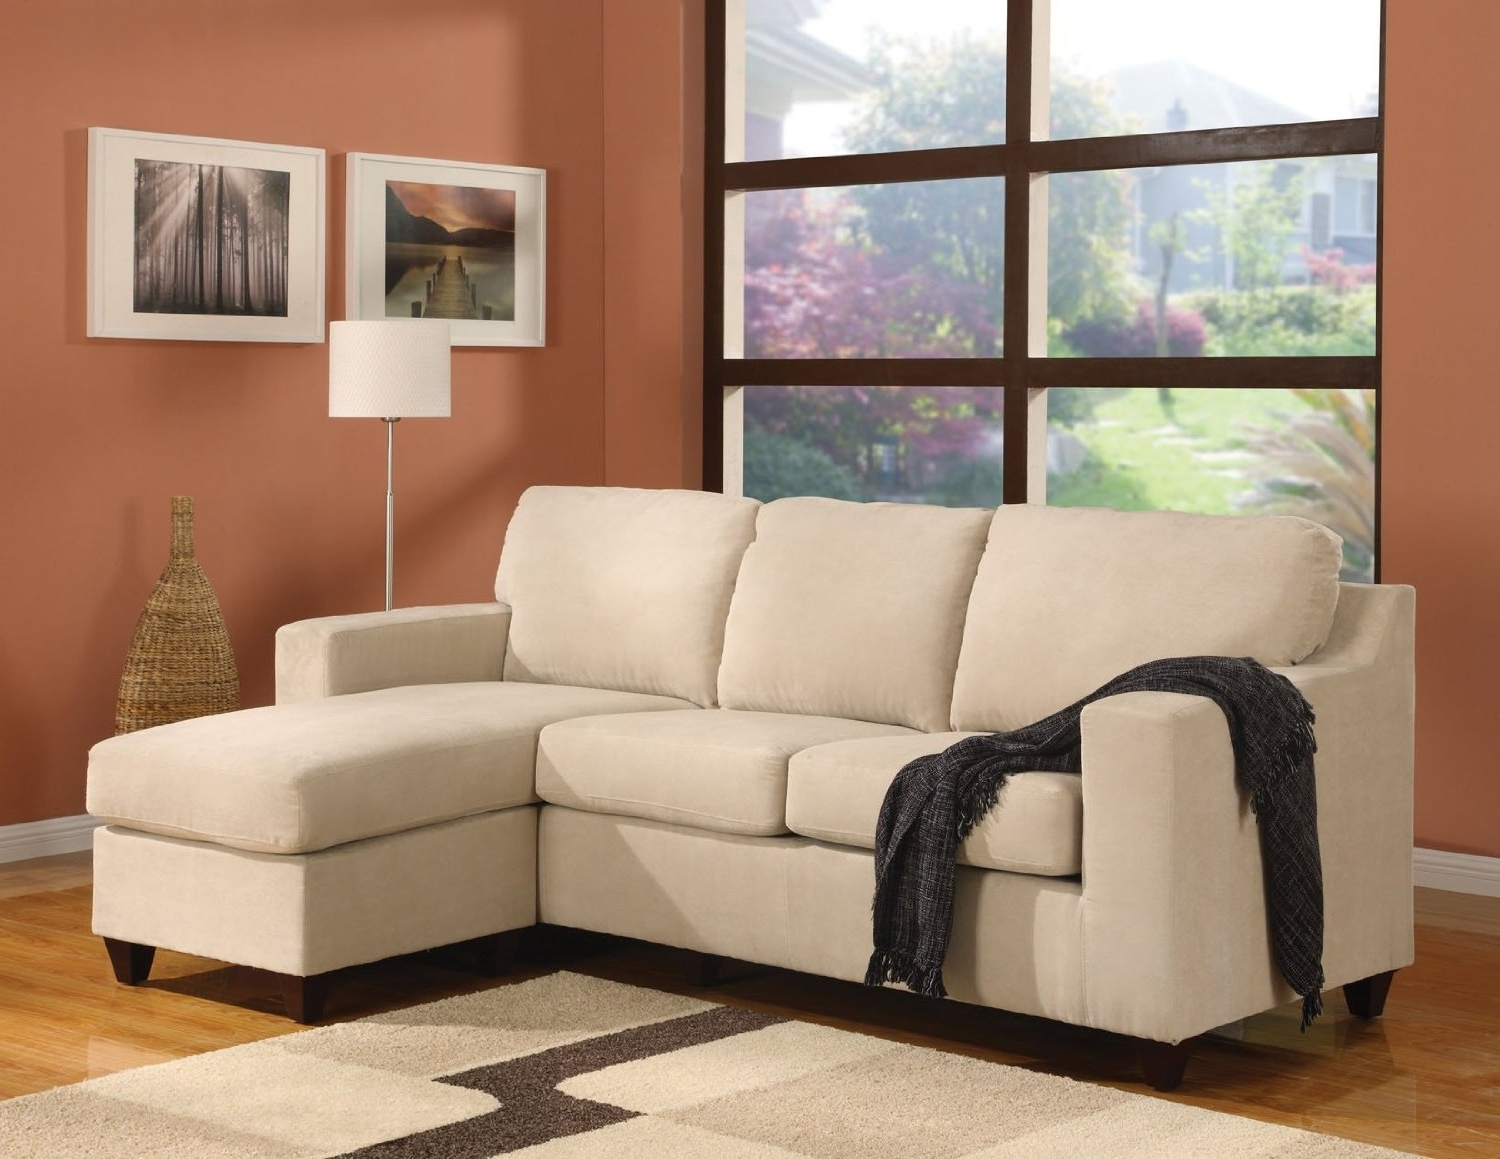 Best And Newest Sectionals With Reversible Chaise With Regard To Awesome Small Sectional Sofa With Chaise Lounge Chairs (View 1 of 15)